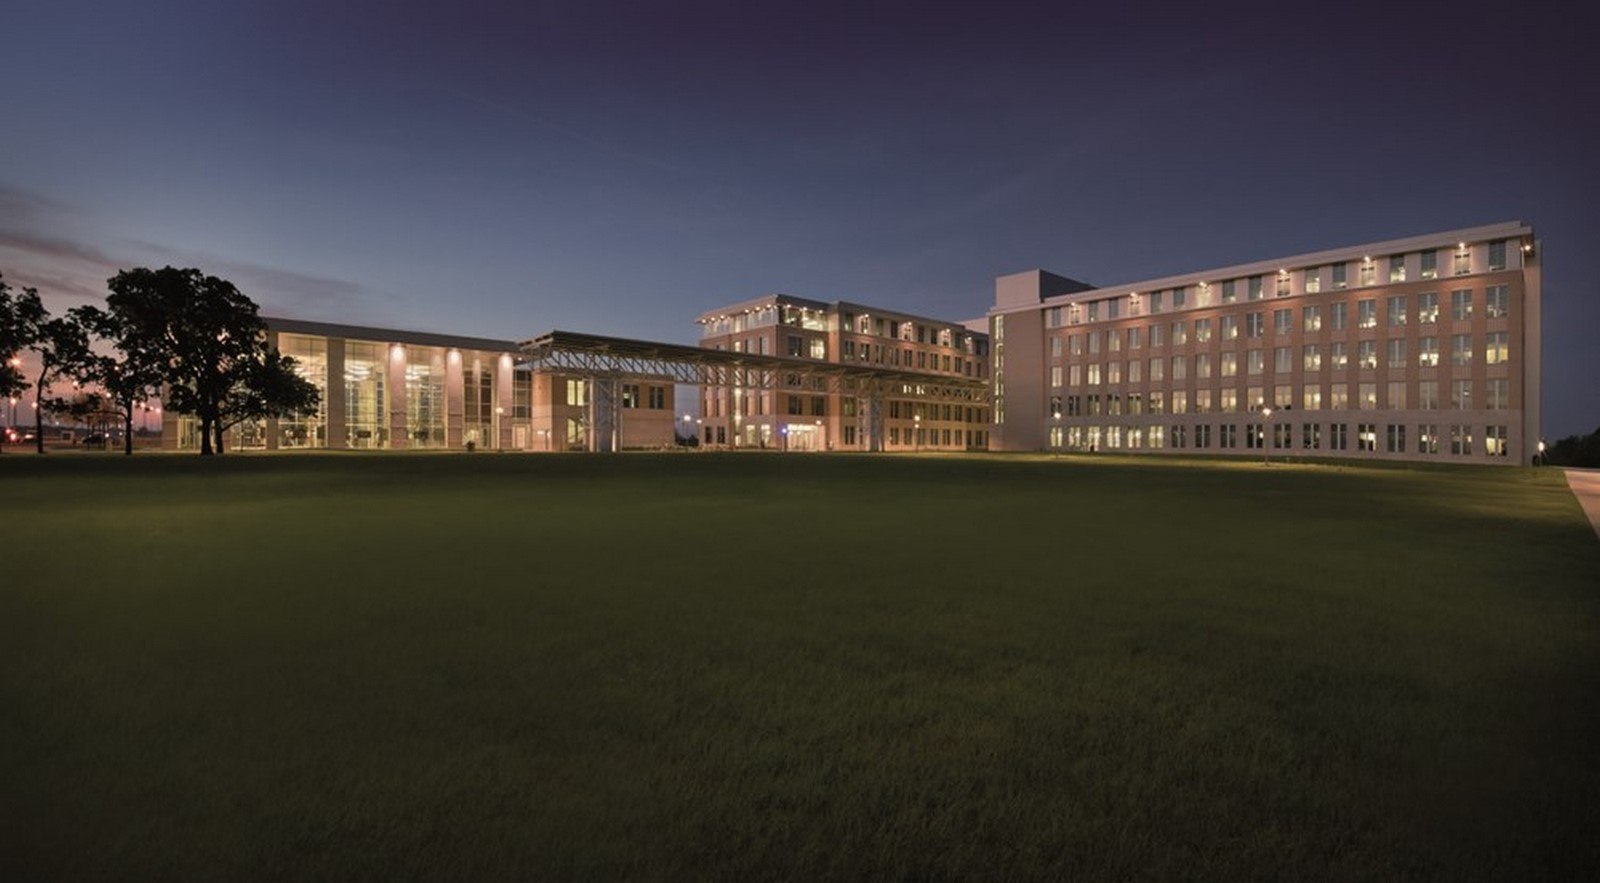 TEXAS A&M UNIVERSITY AGRICULTURE AND LIFE SCIENCES COMPLEX - Sheet1